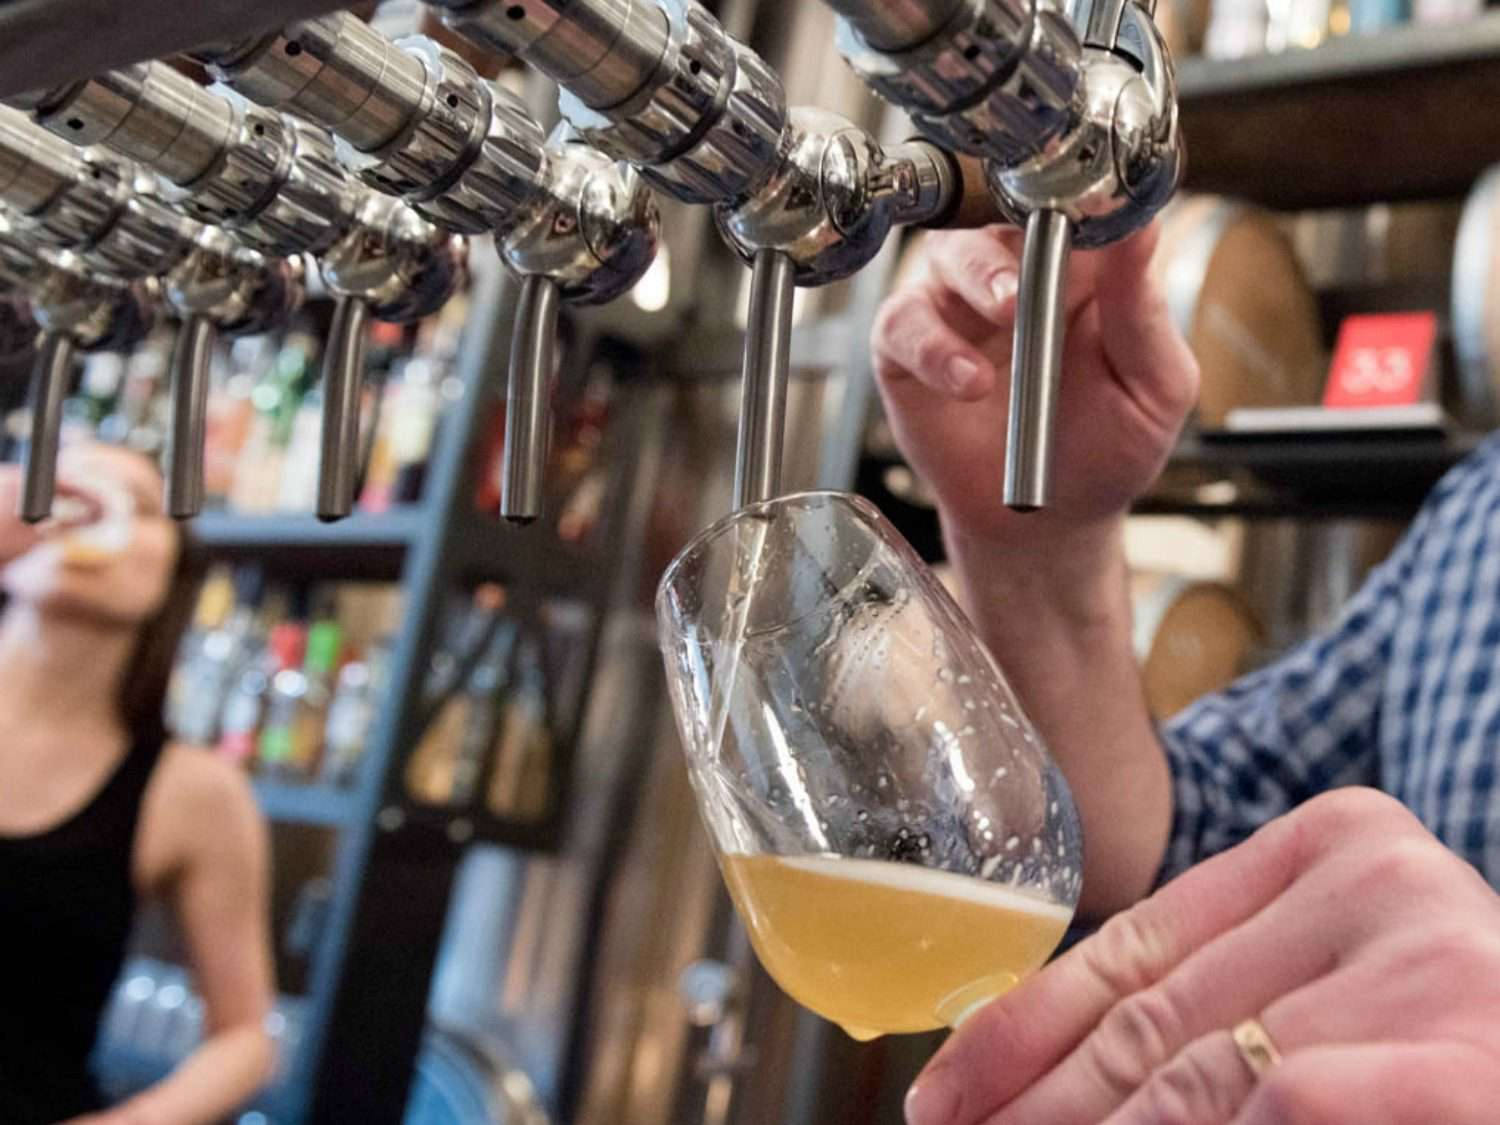 Pouring beer into a glass from a tap.